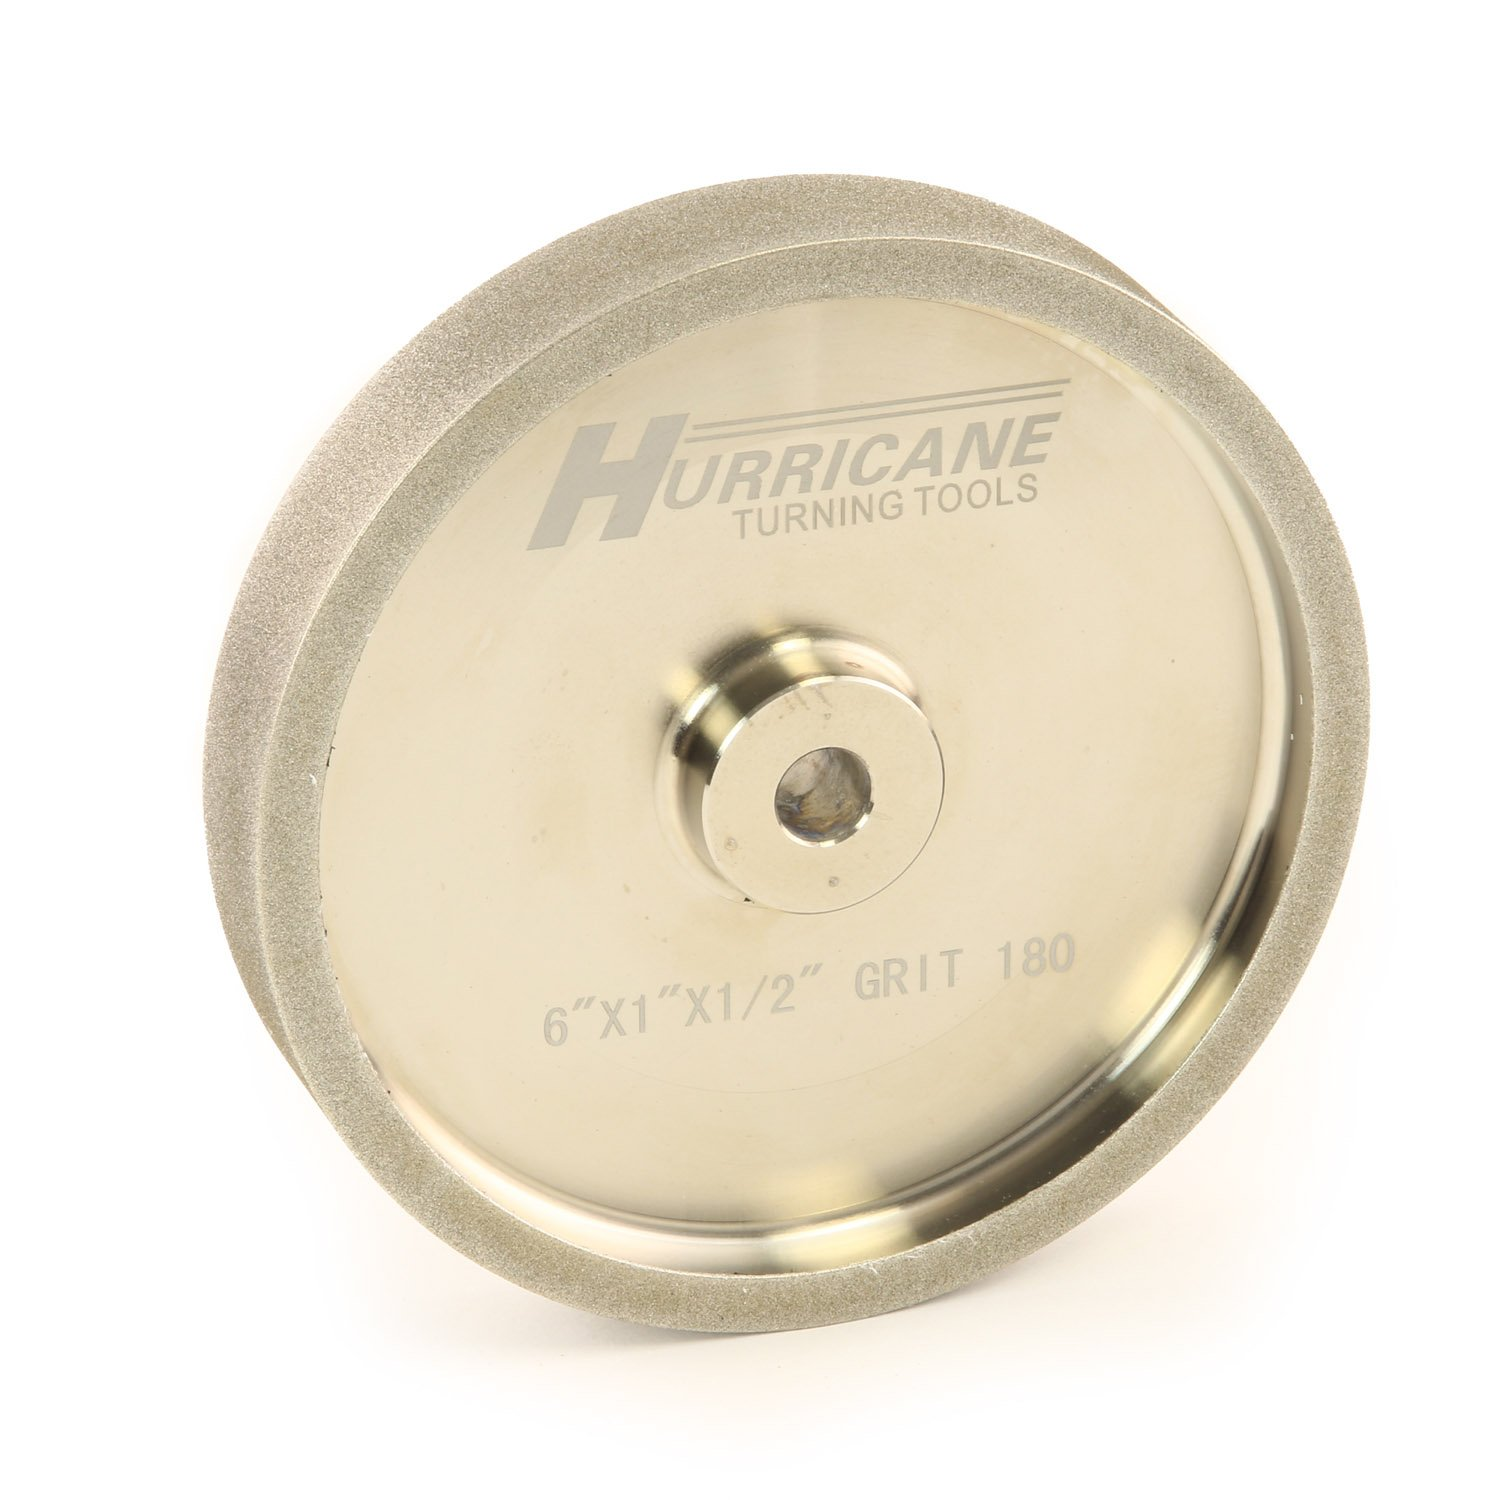 Hurricane 6'' CBN Grinding Wheel, 180 Grit, 1.0'' Wide, 1/2'' Bore, for Sharpening High Speed Steel Tools